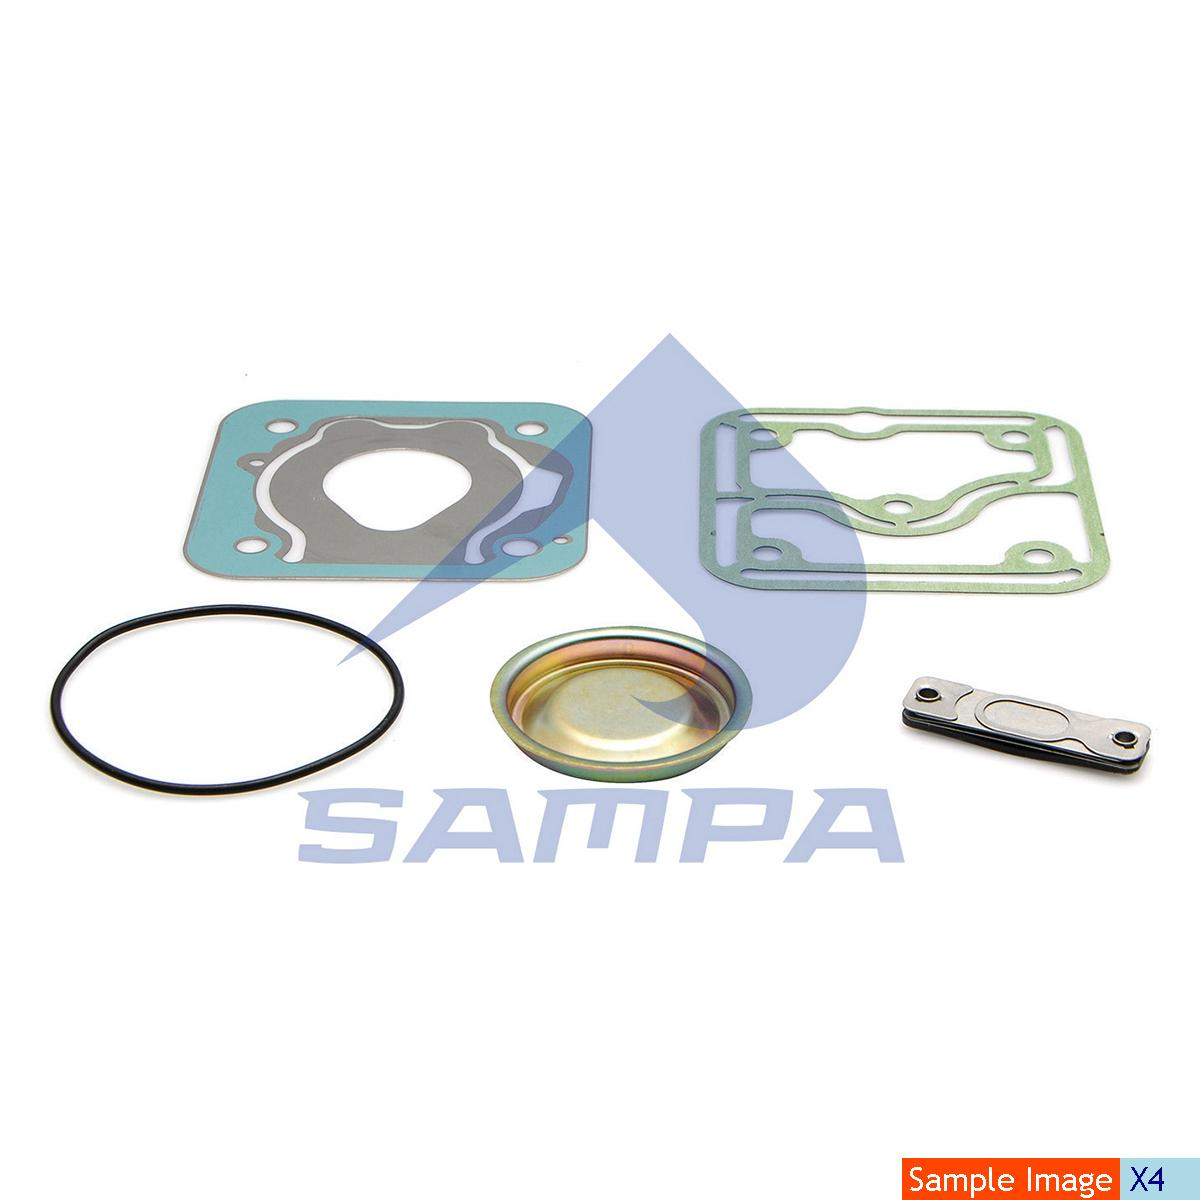 Repair Kit, Compressor, Mercedes, Compressed Air System